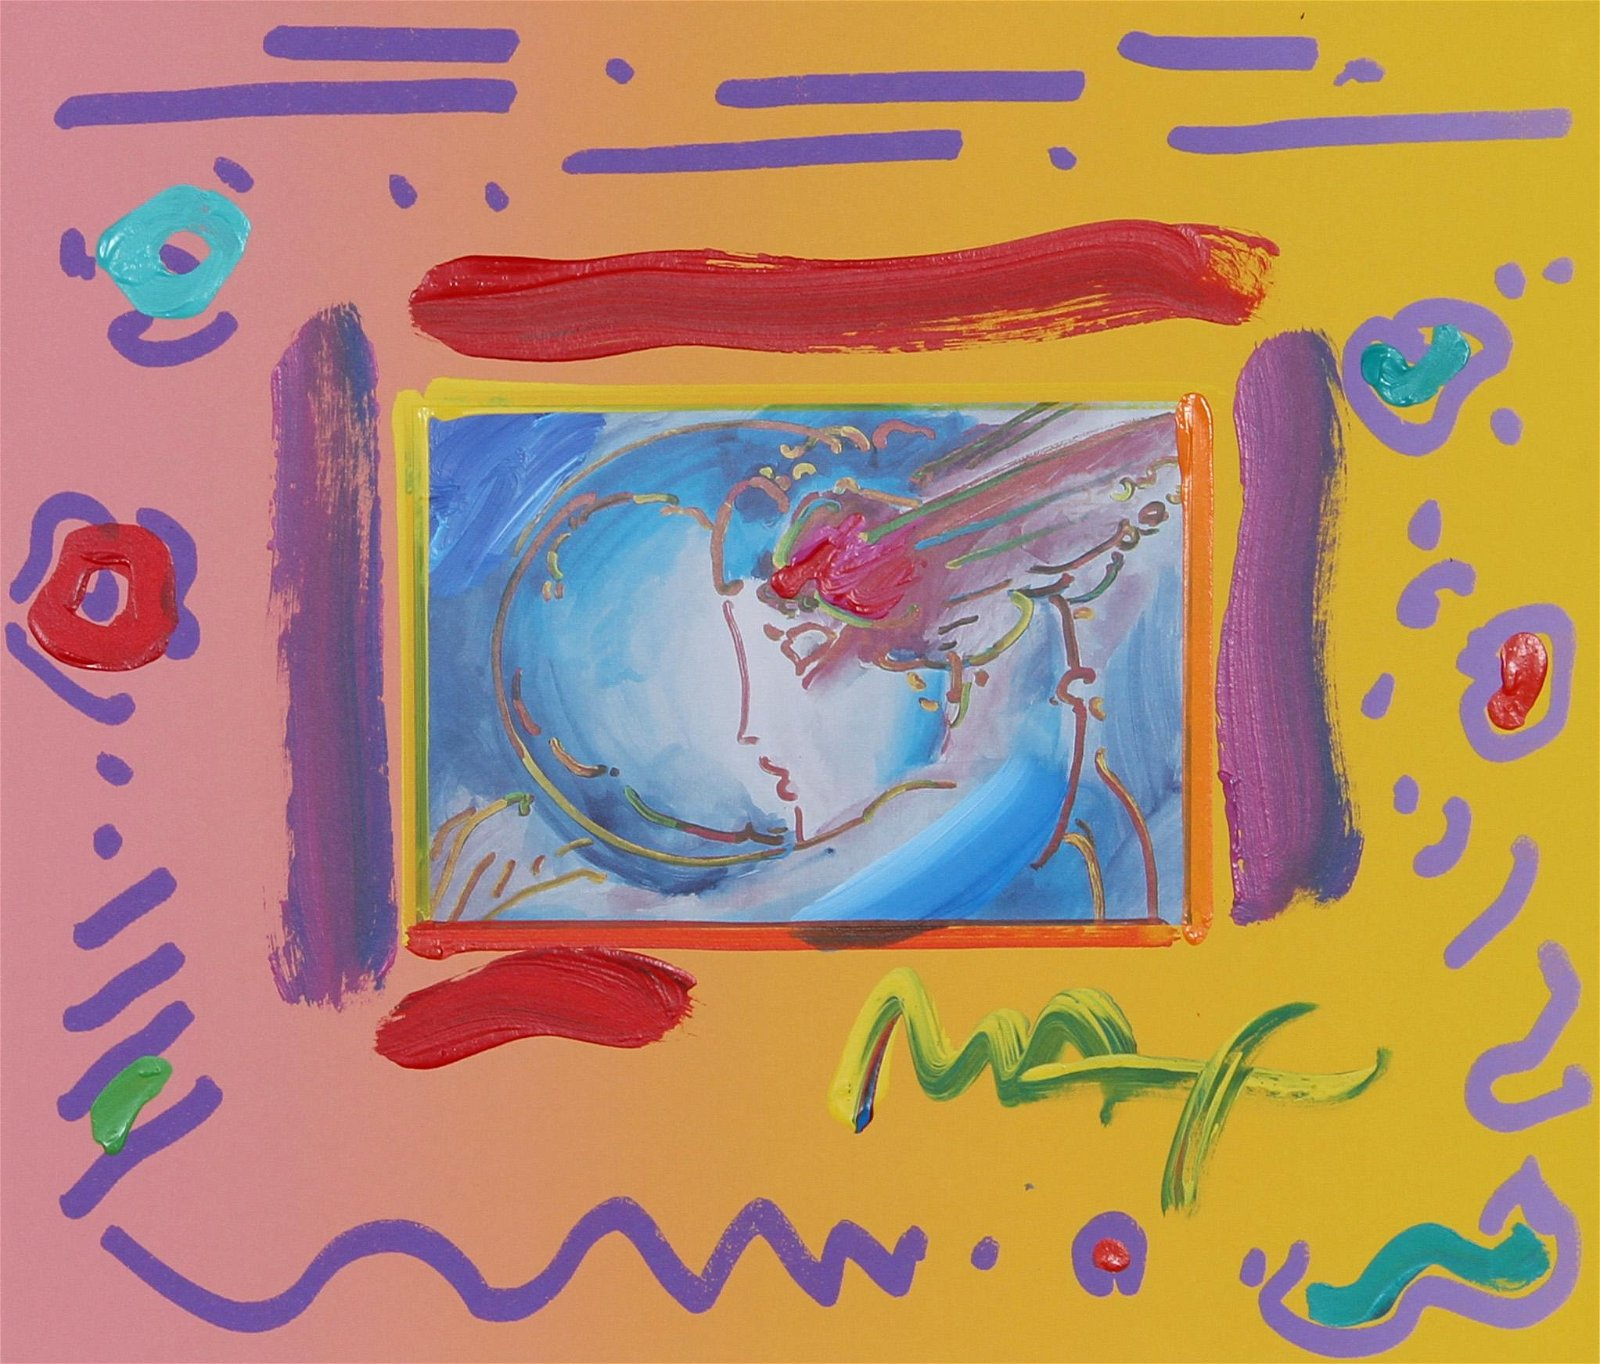 Peter Max, I Love the World, Mixed Media Painting on